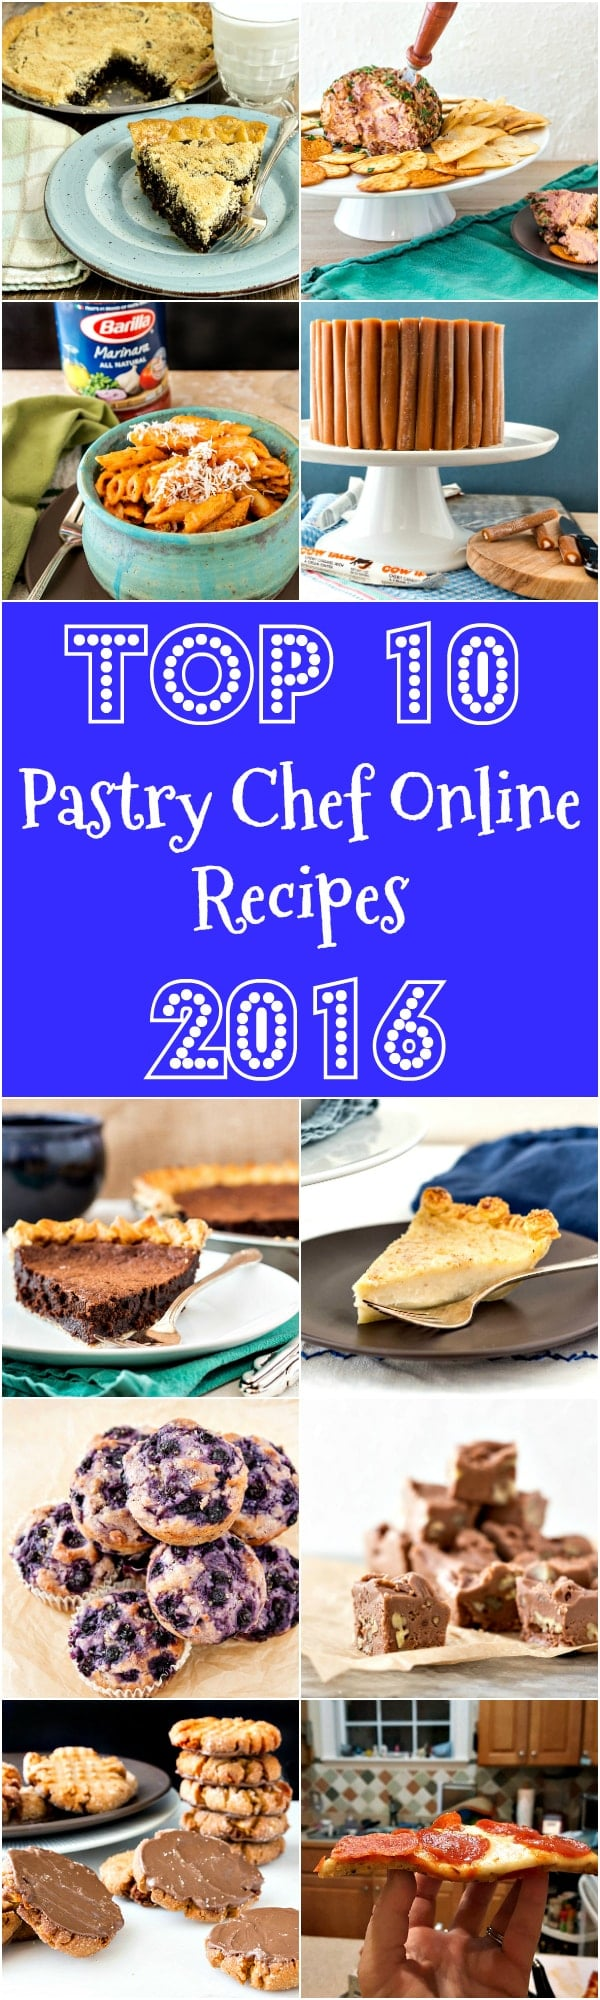 Top 10 Recipes from Pastry Chef Online for 2016, from cauliflower pizza crust to creamy cocoa fudge, I have you covered!   pastrychefonline.com